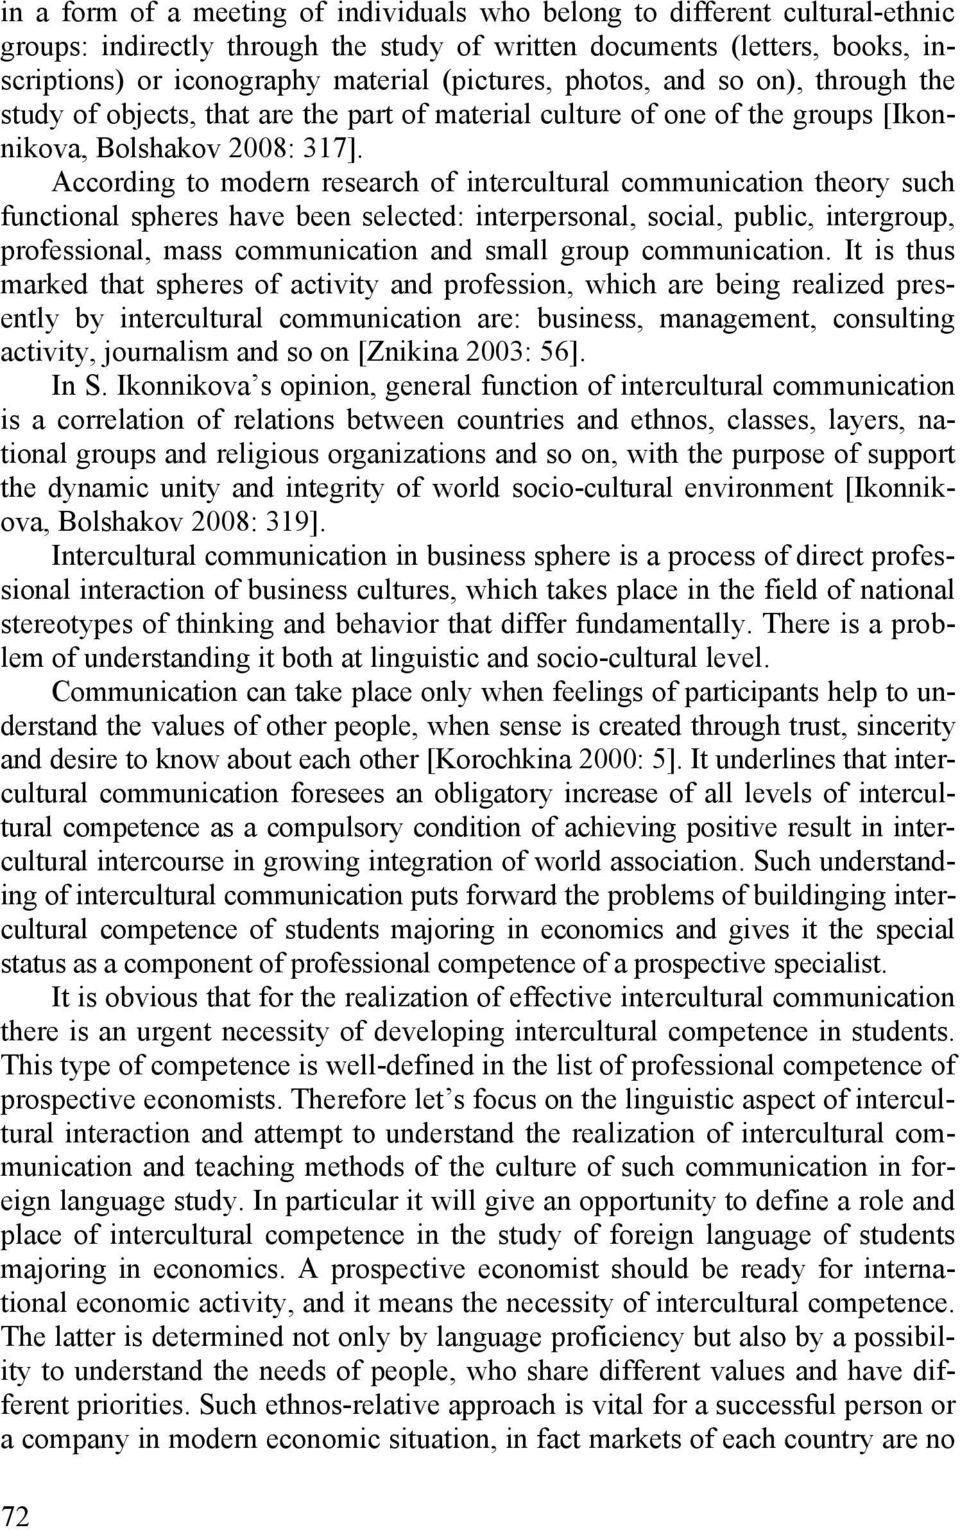 According to modern research of intercultural communication theory such functional spheres have been selected: interpersonal, social, public, intergroup, professional, mass communication and small